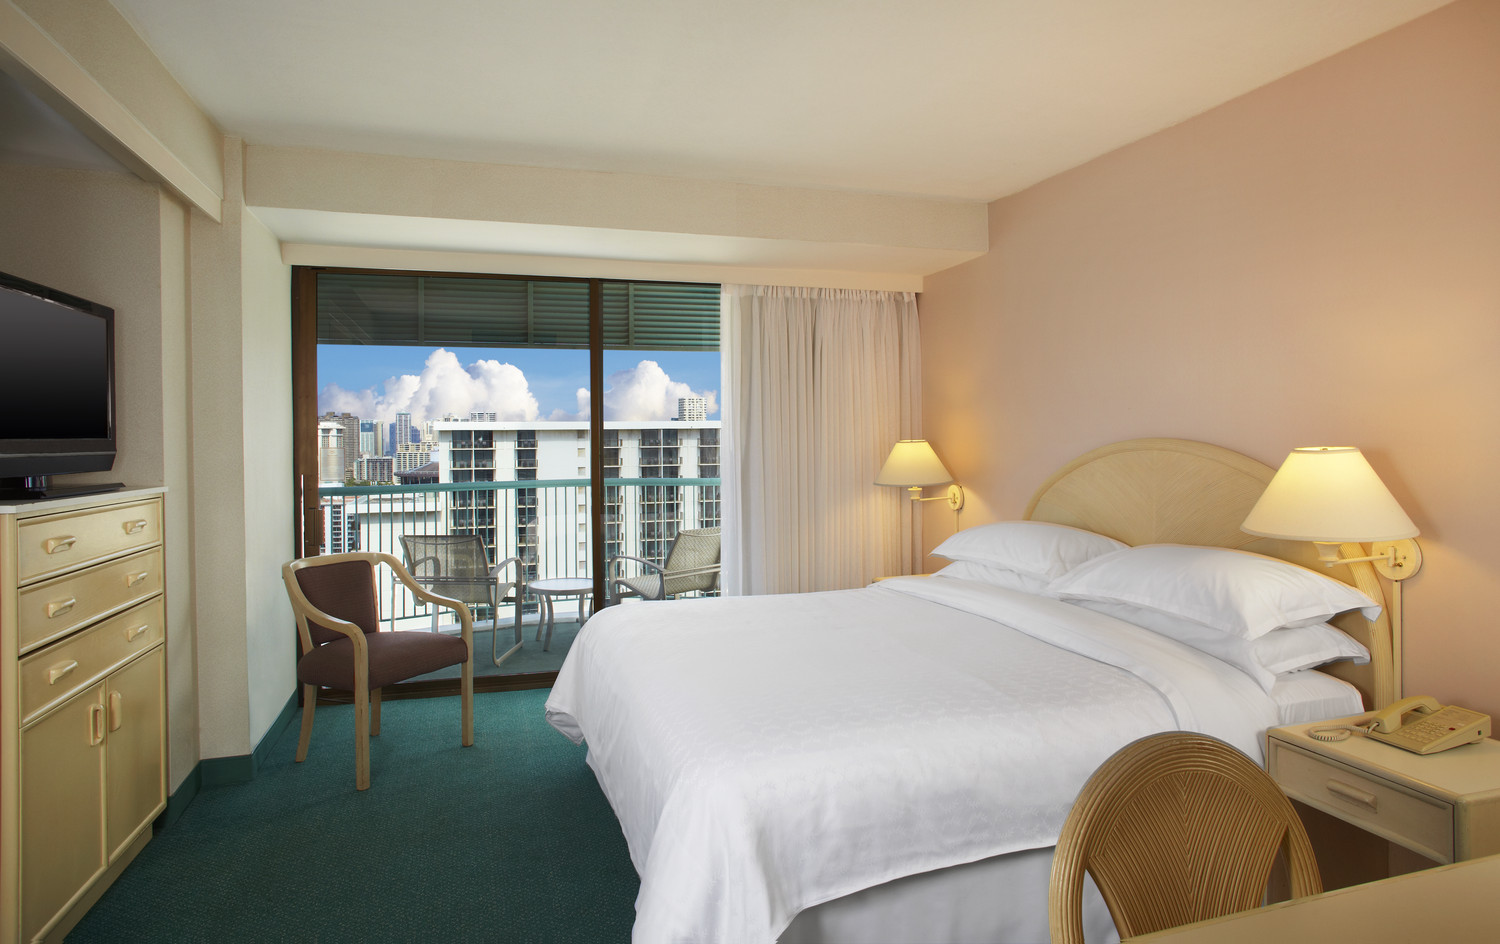 Four Island Hawaii Vacation All Inclusive Vacation